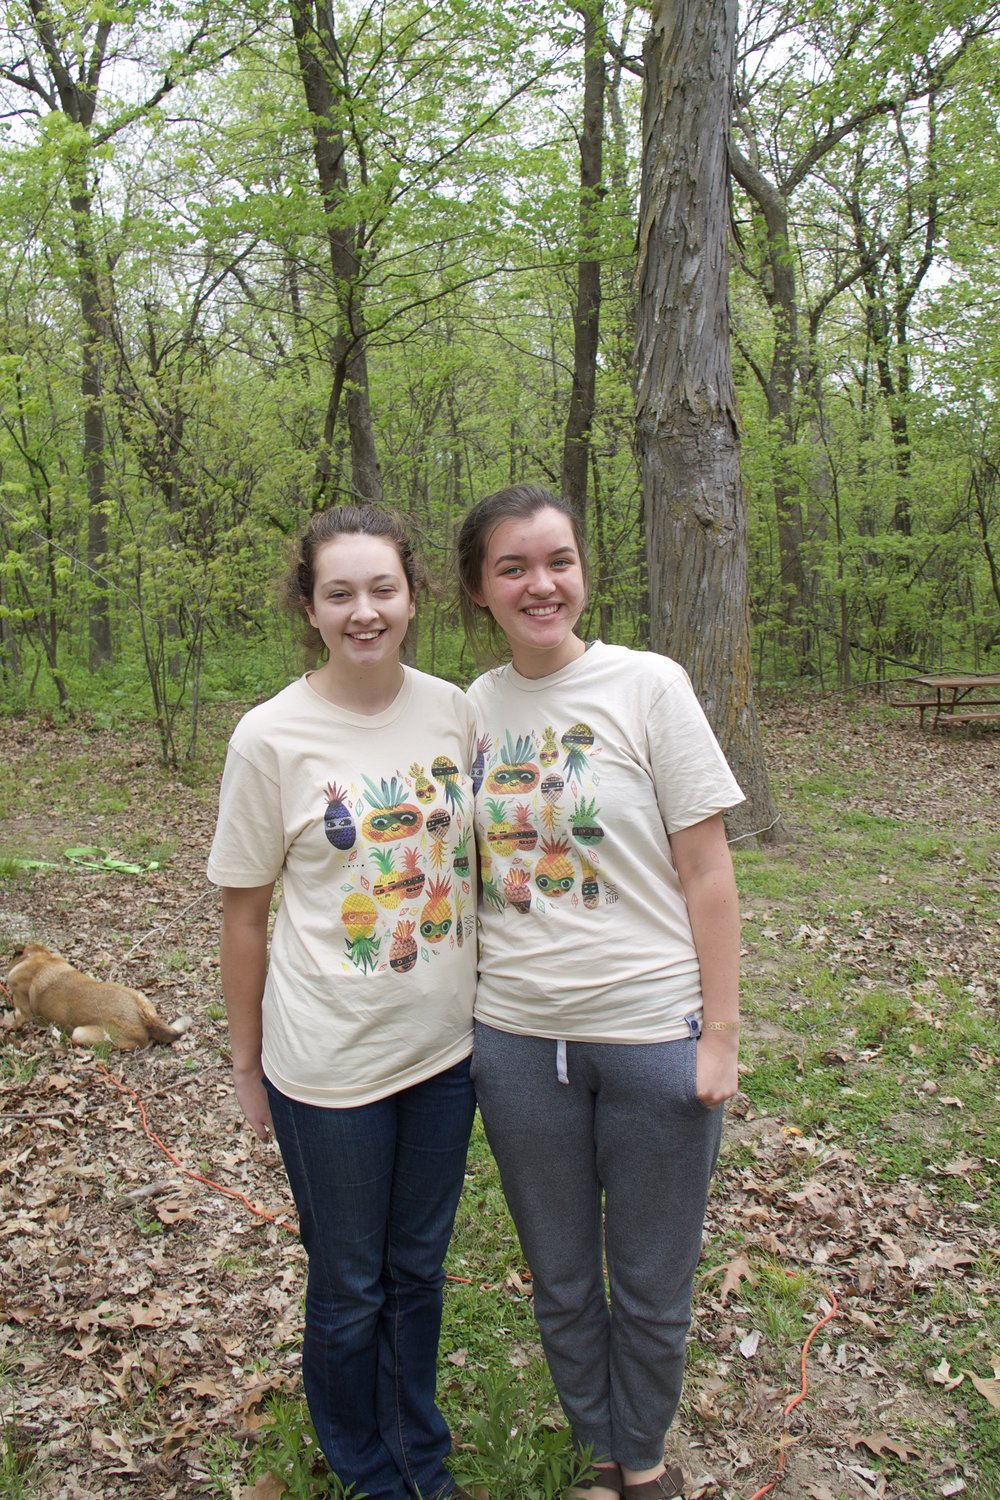 Daisy and Amy were so happy to find matching t-shirts. :-)